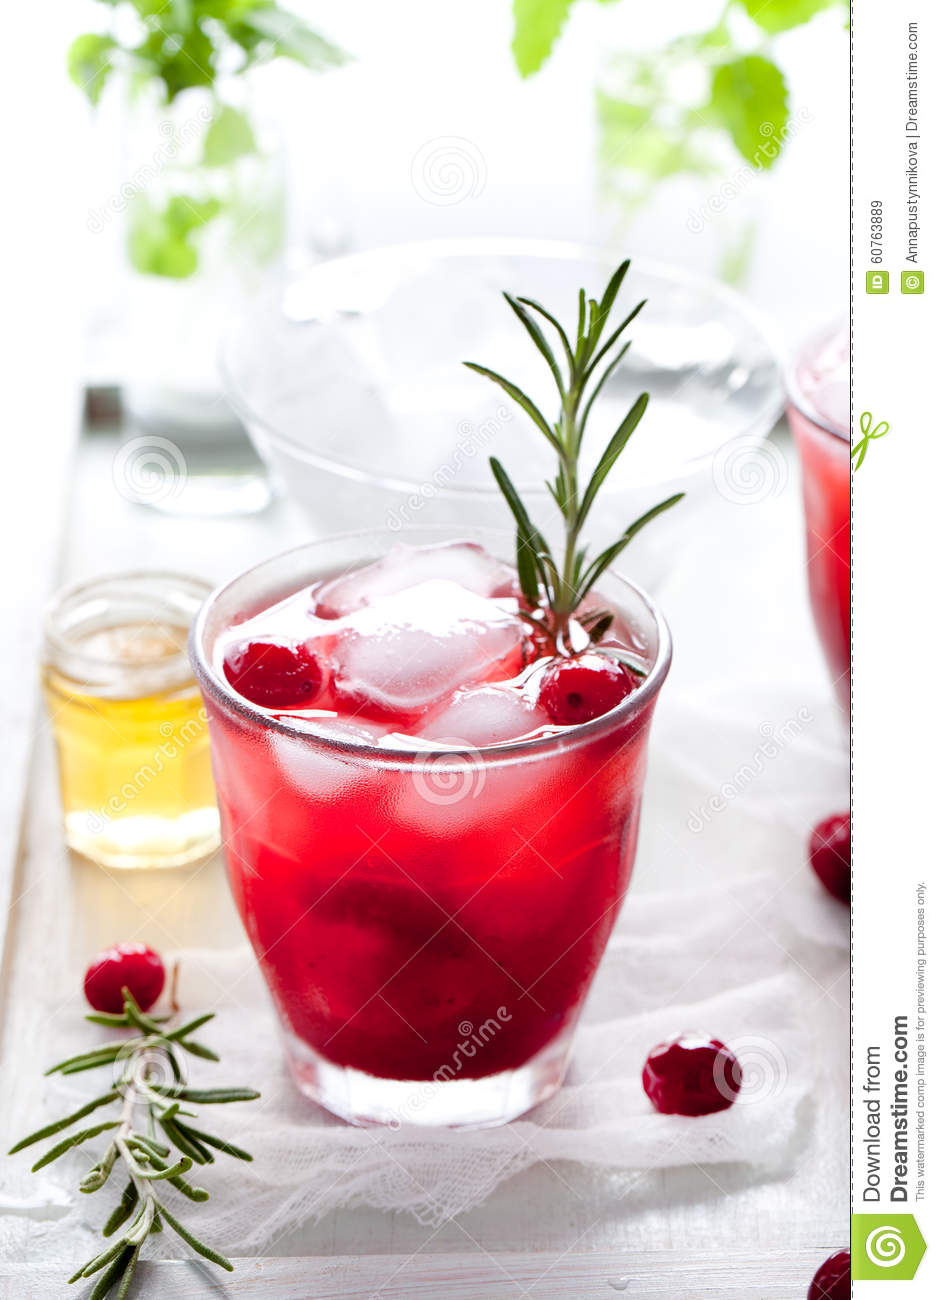 Cranberry Fizz Cocktail Recipe: Cranberry, Rosemary, Gin Fizz, Cocktail Stock Photo